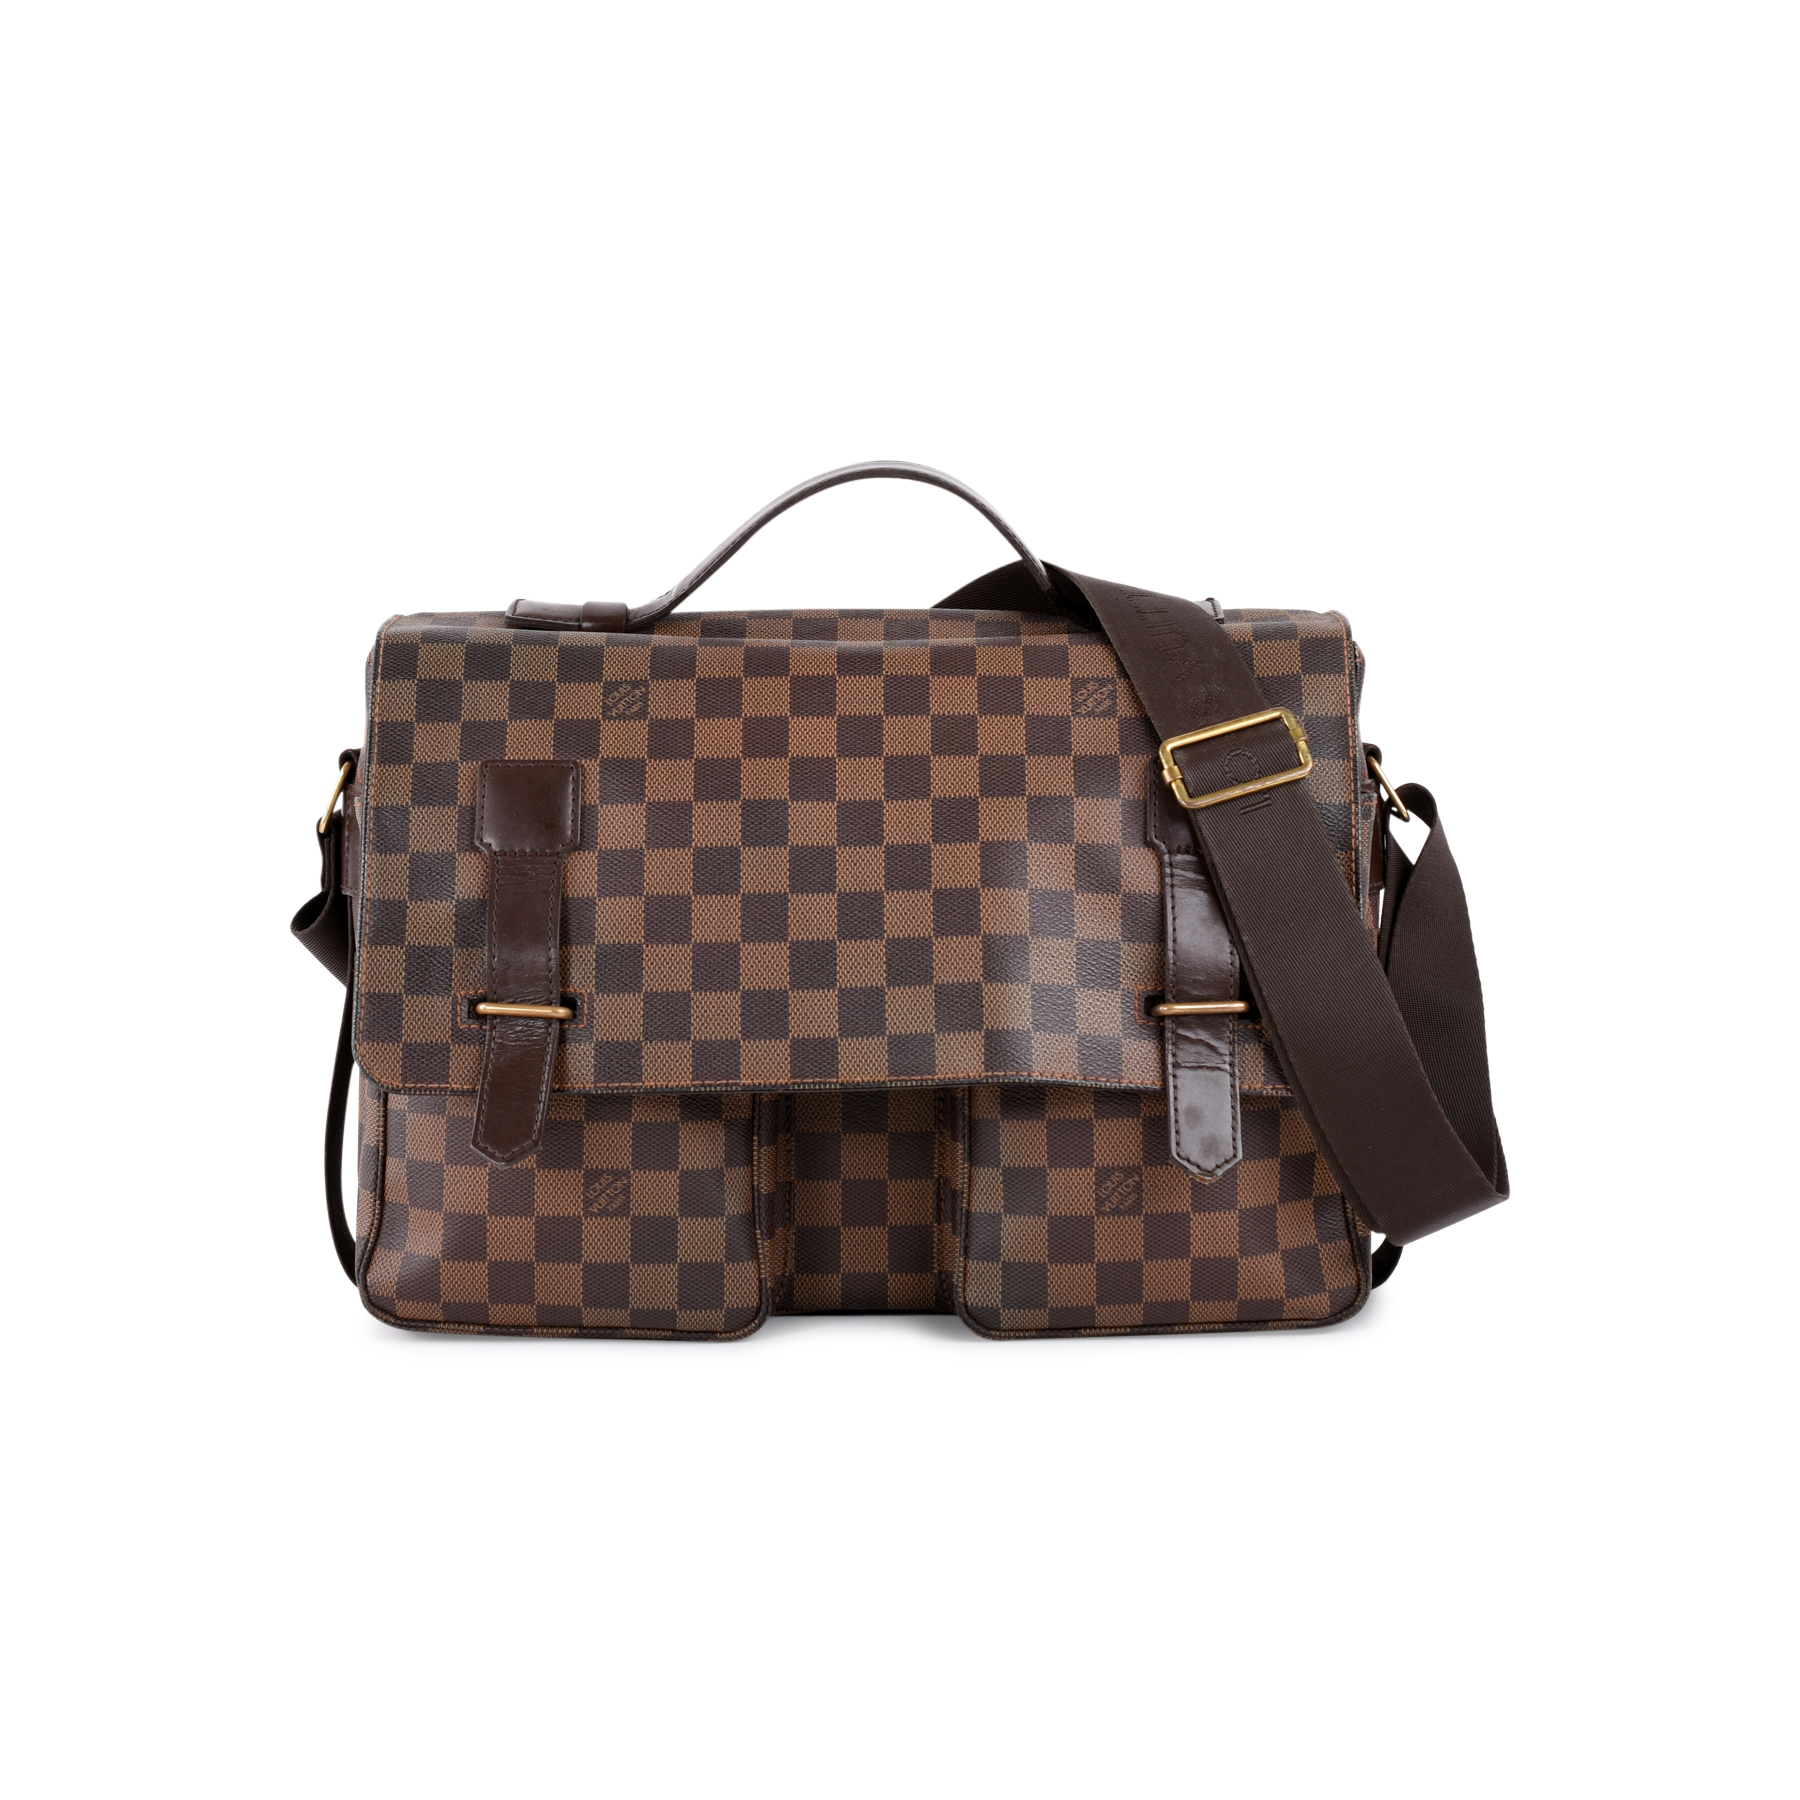 Authentic Pre Owned Louis Vuitton Damier Ebene Broadway Messenger Bag Pss 462 00020 The Fifth Collection